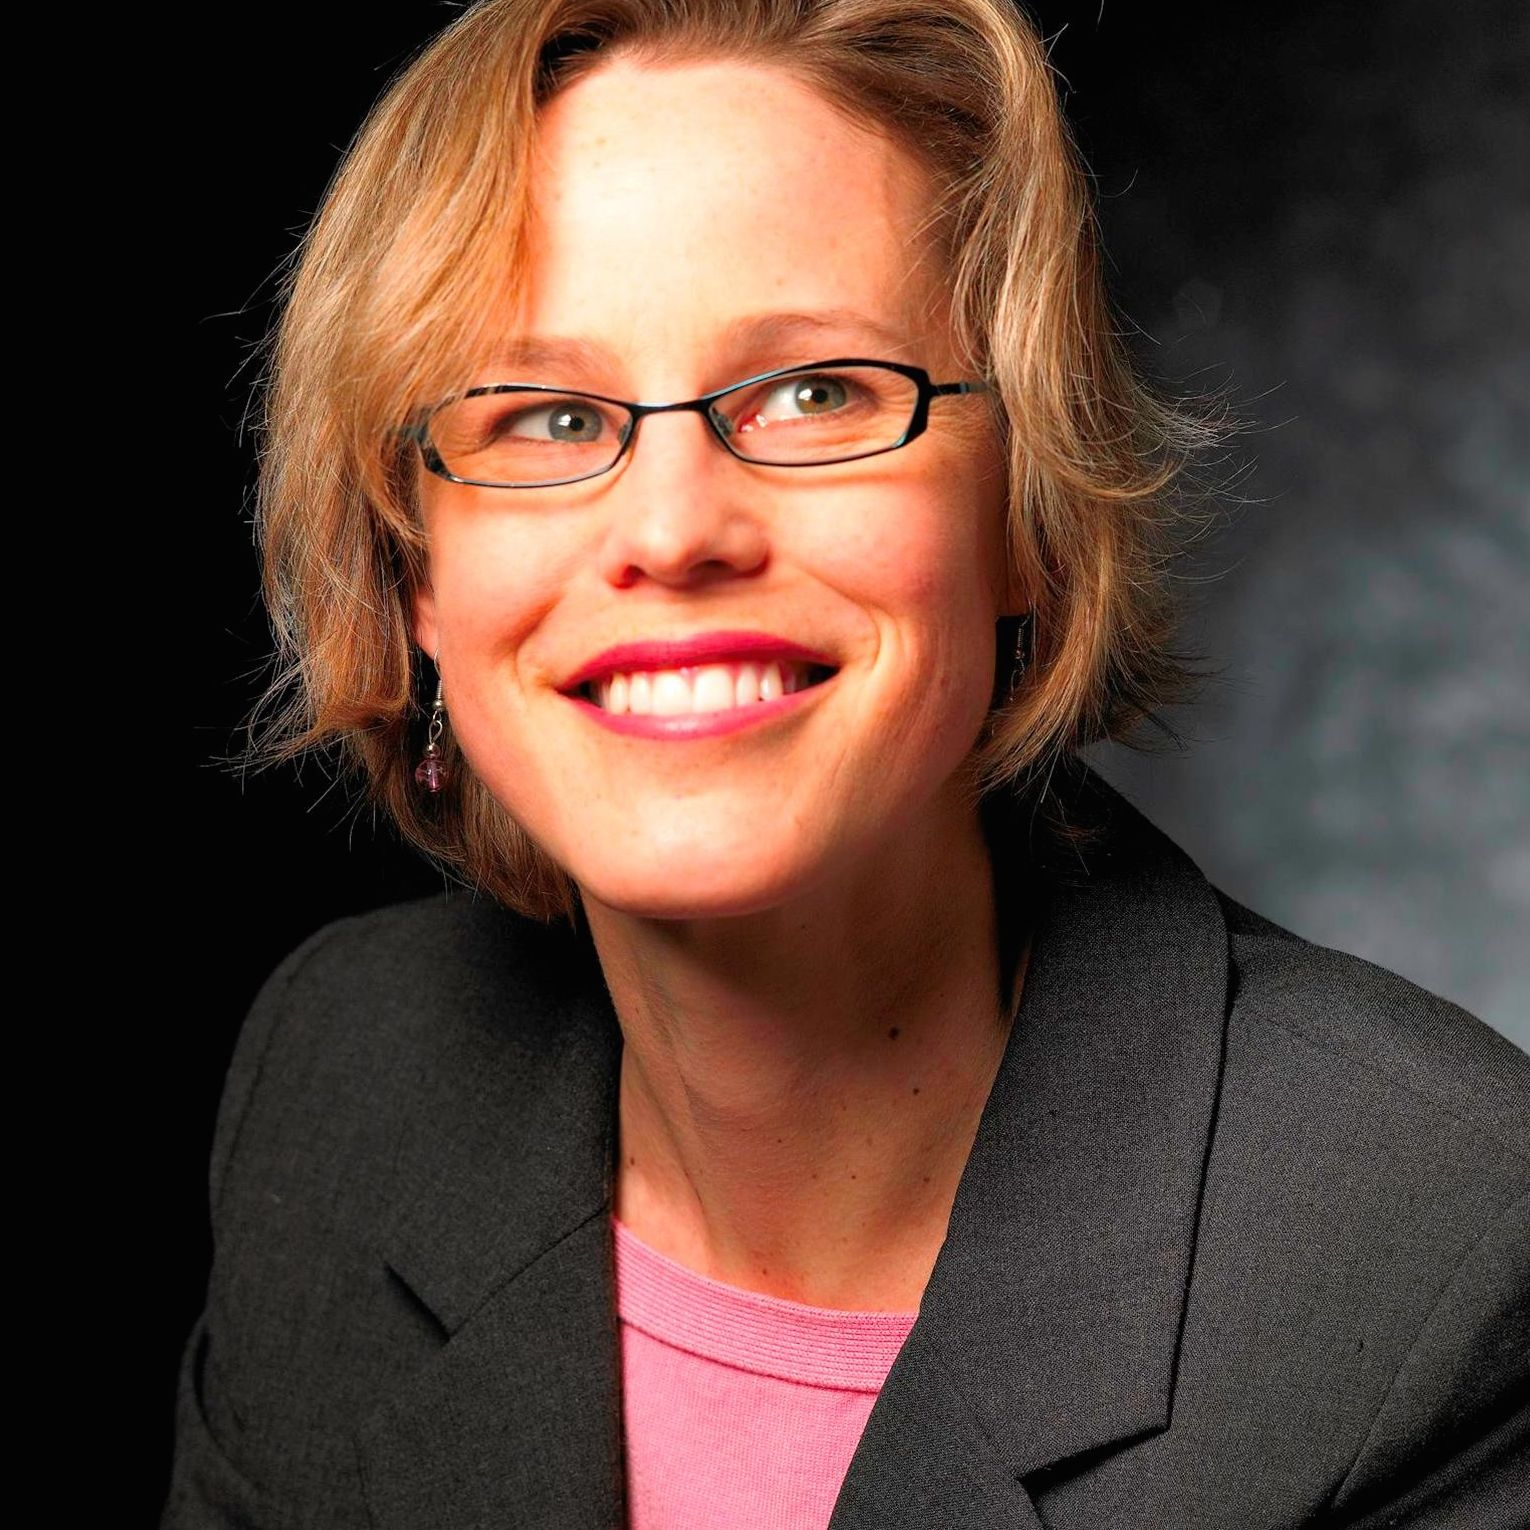 Forum on this topic: Diana Coupland, linda-carlson/